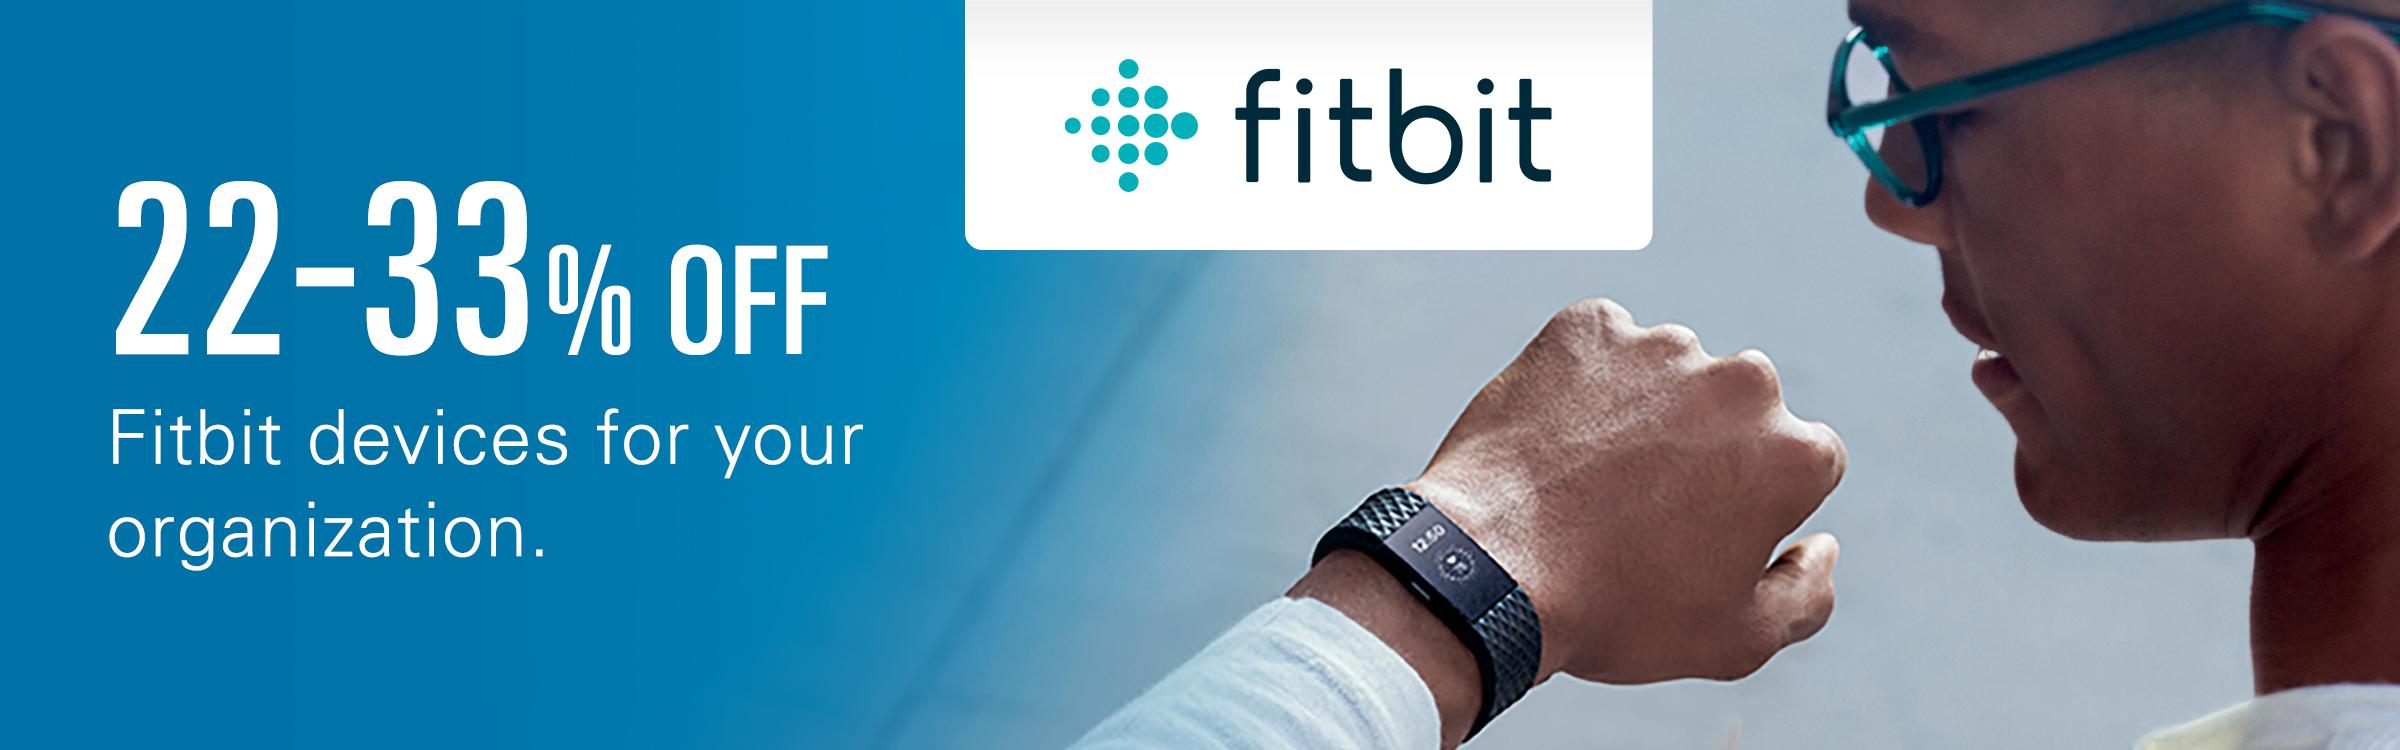 Fitbit Promotion for Employers